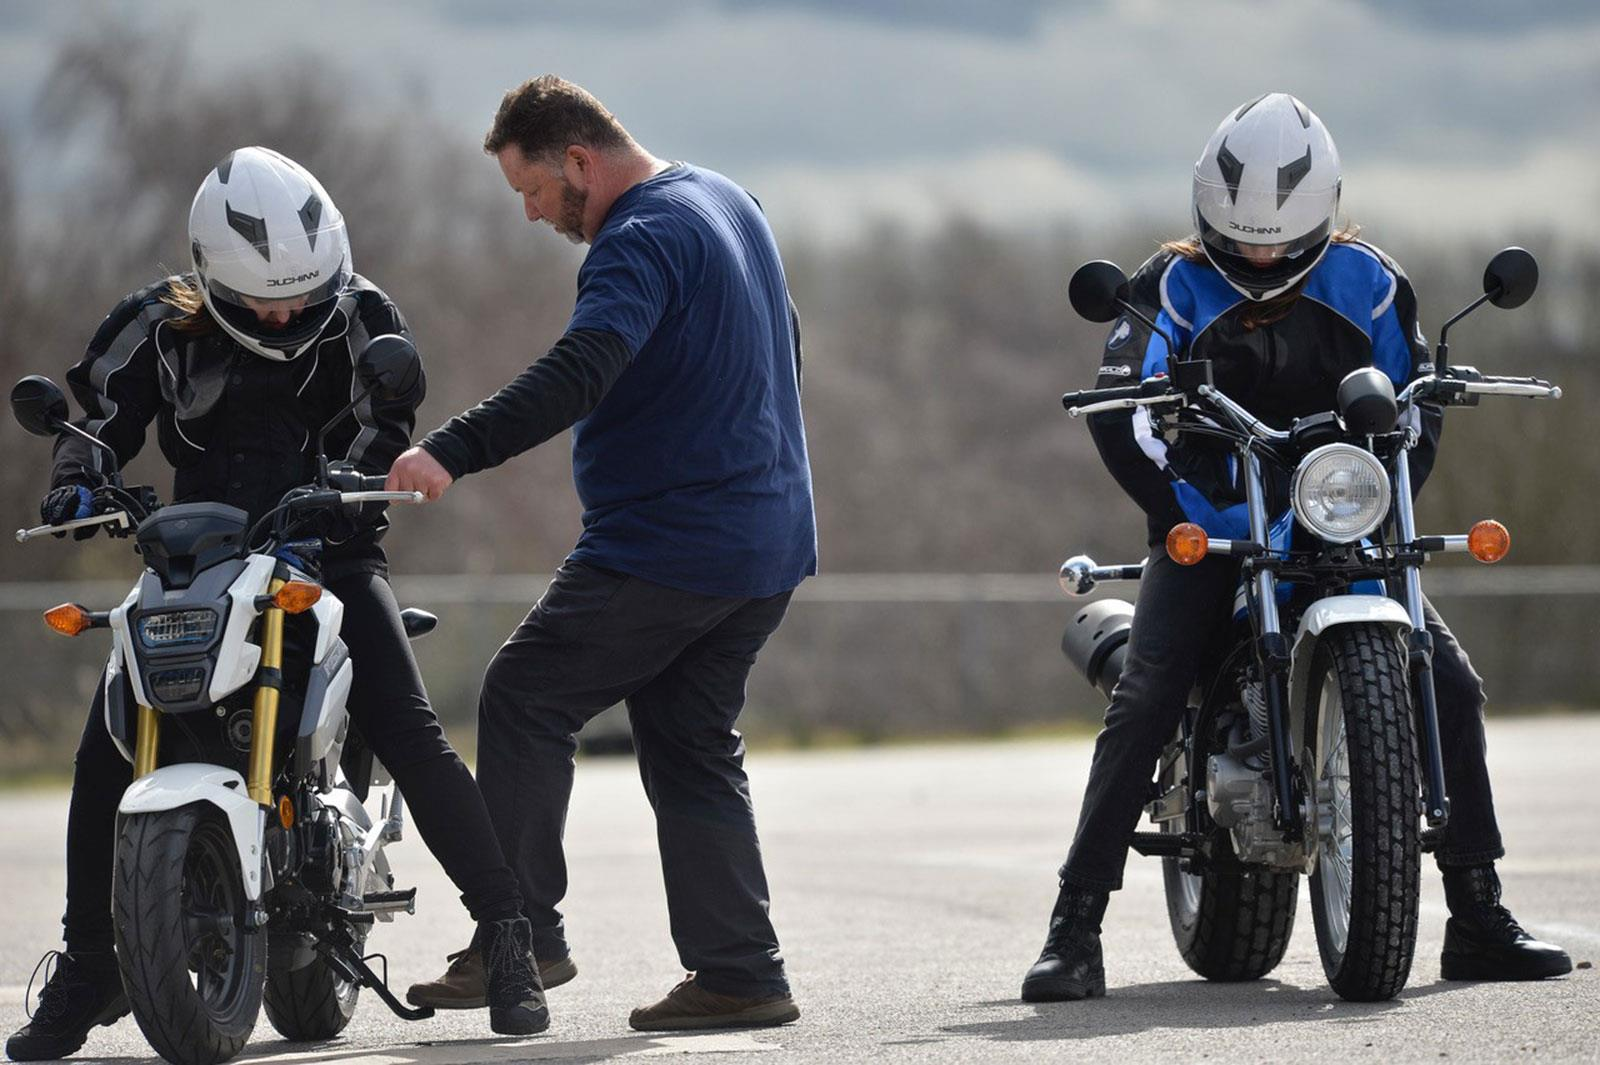 Get On motorcycle taster session